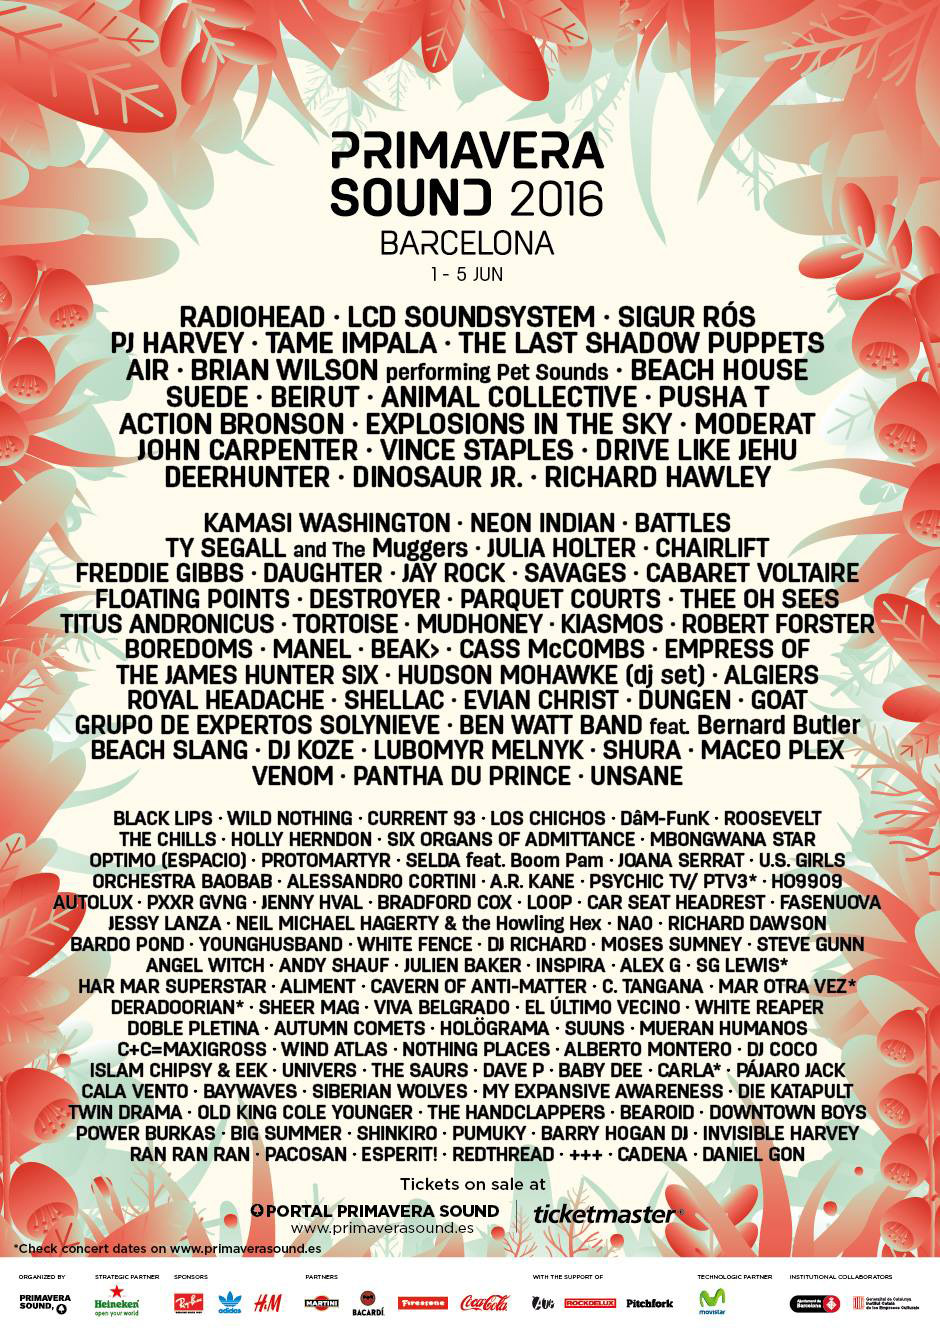 Cartel de Primavera Sound 2016